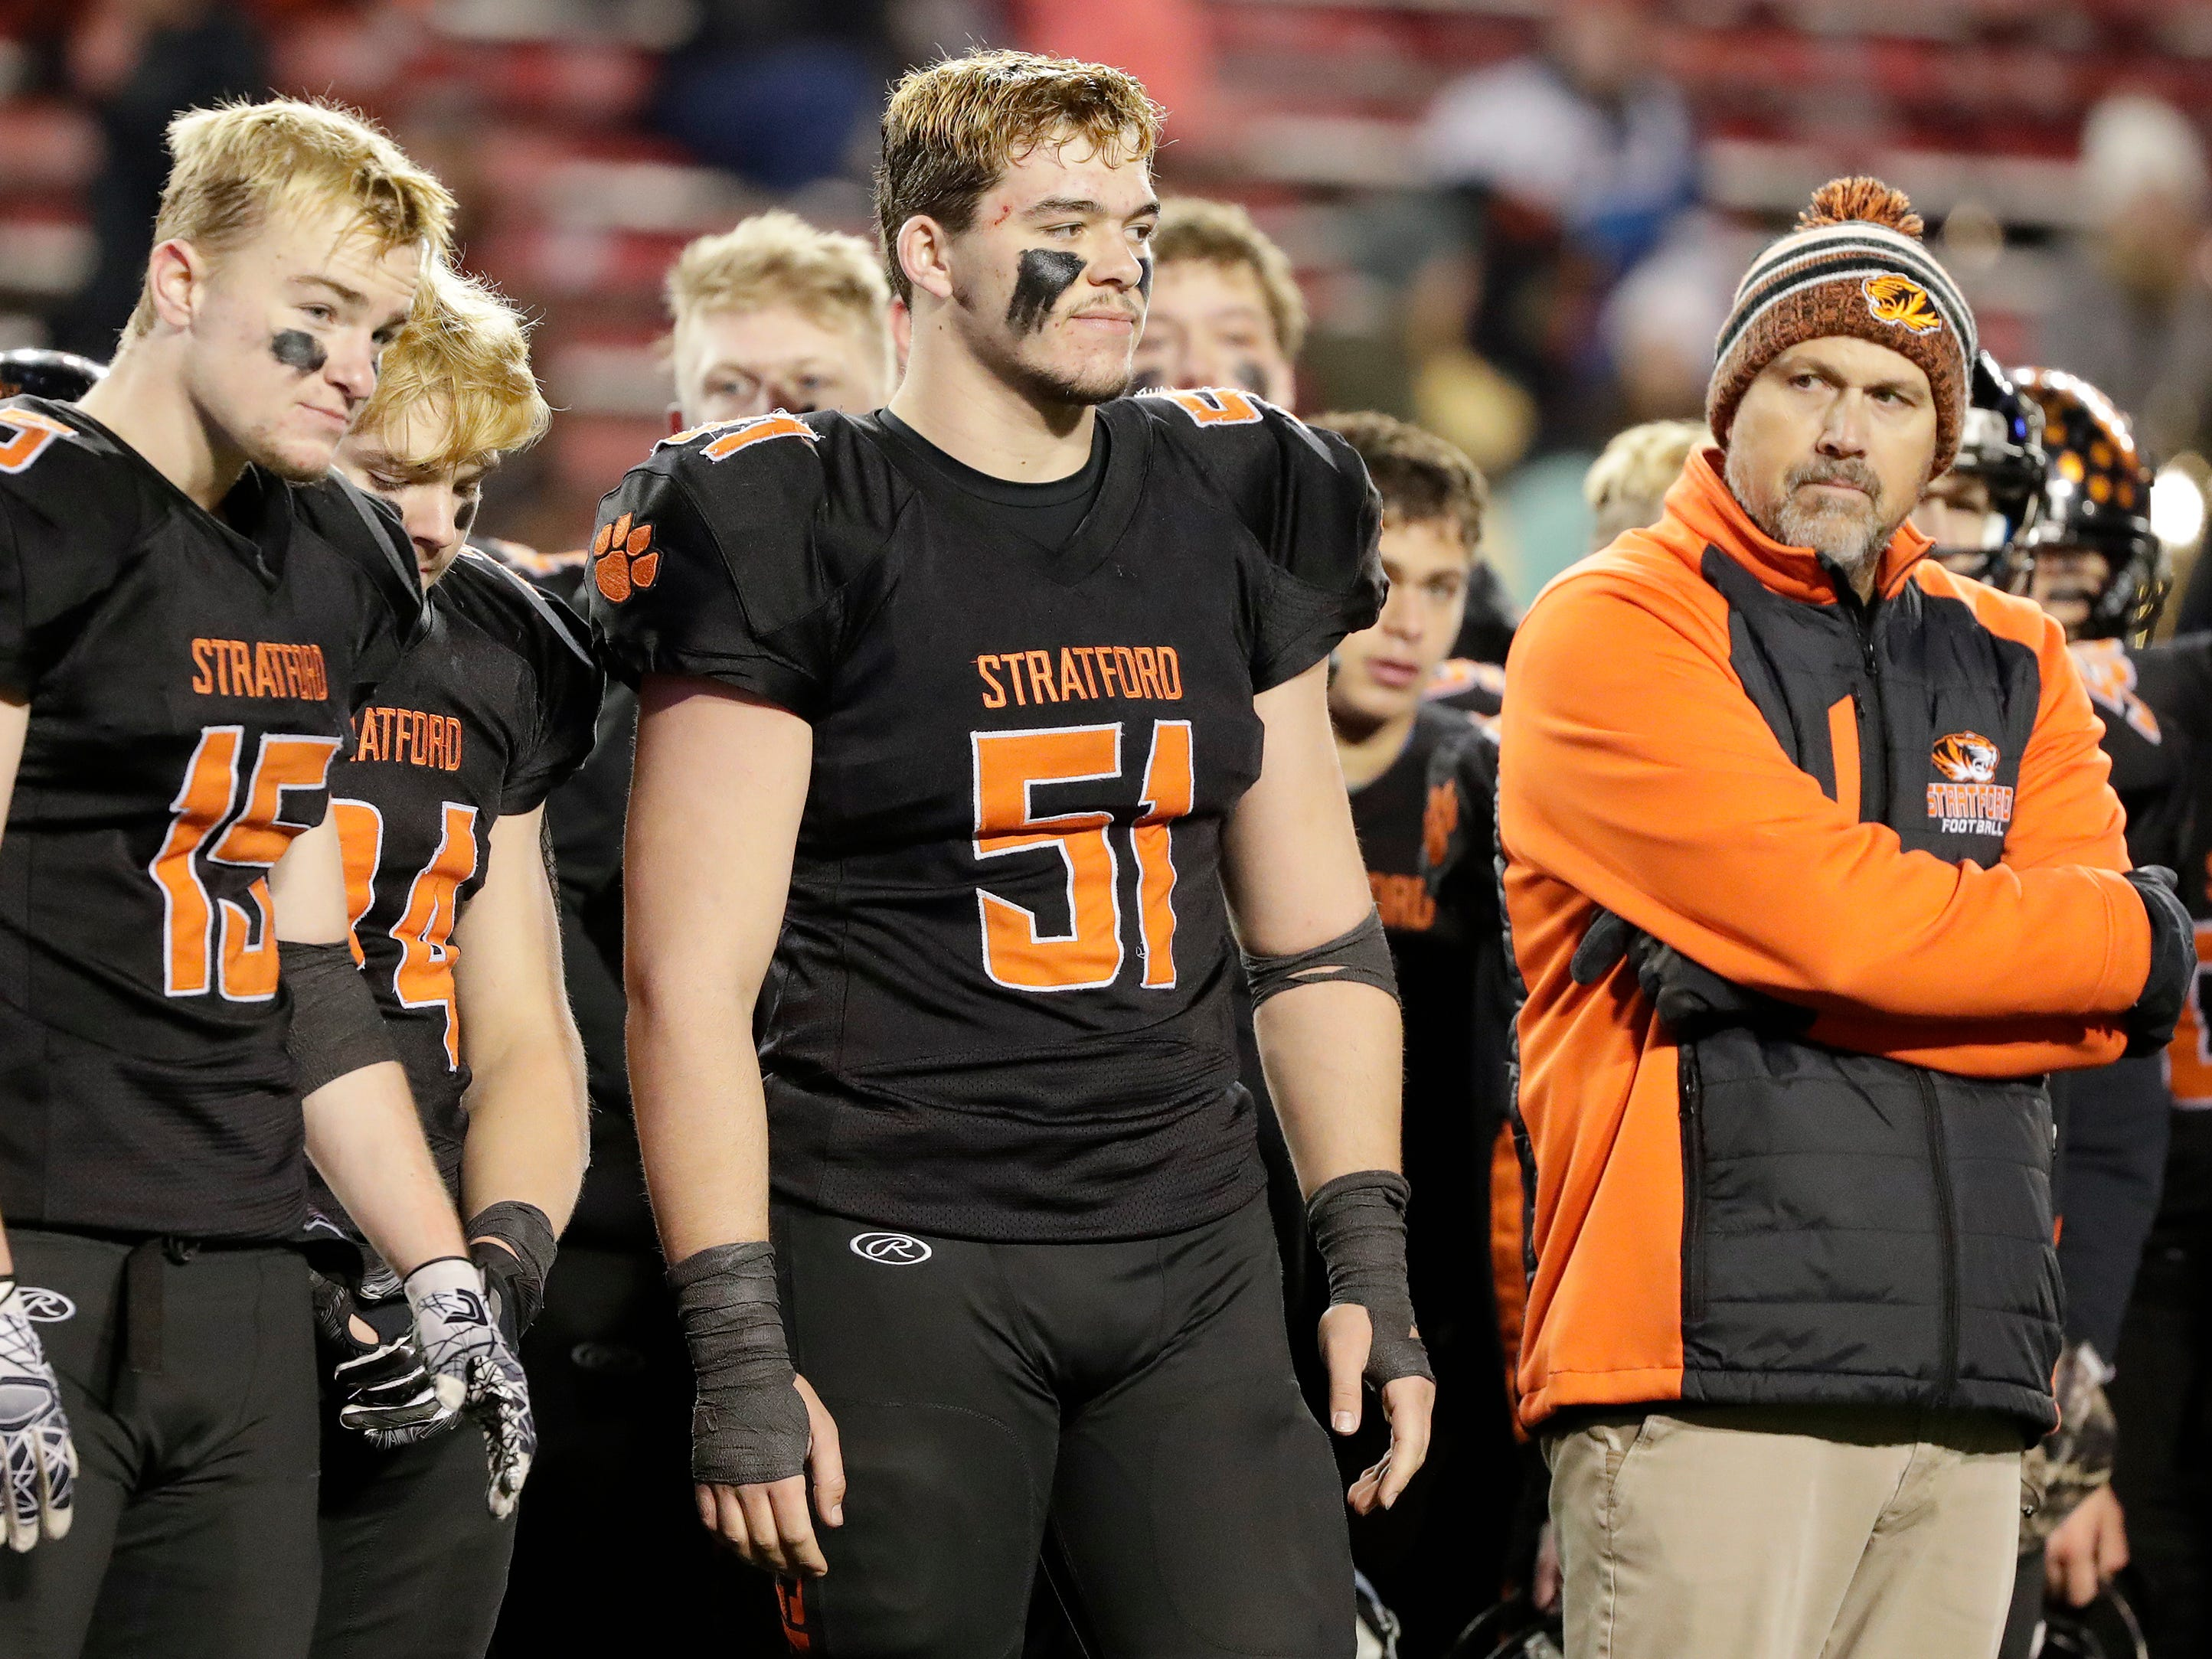 Stratford's Okley Wrensch (15) and Dylan Schoenherr (51) await their runners up awards after the Tigers lost 20-17 to St Mary's Springs Academy in the WIAA Division 5 championship game at Camp Randall Stadium on Thursday, November 15, 2018 in Madison, Wis.